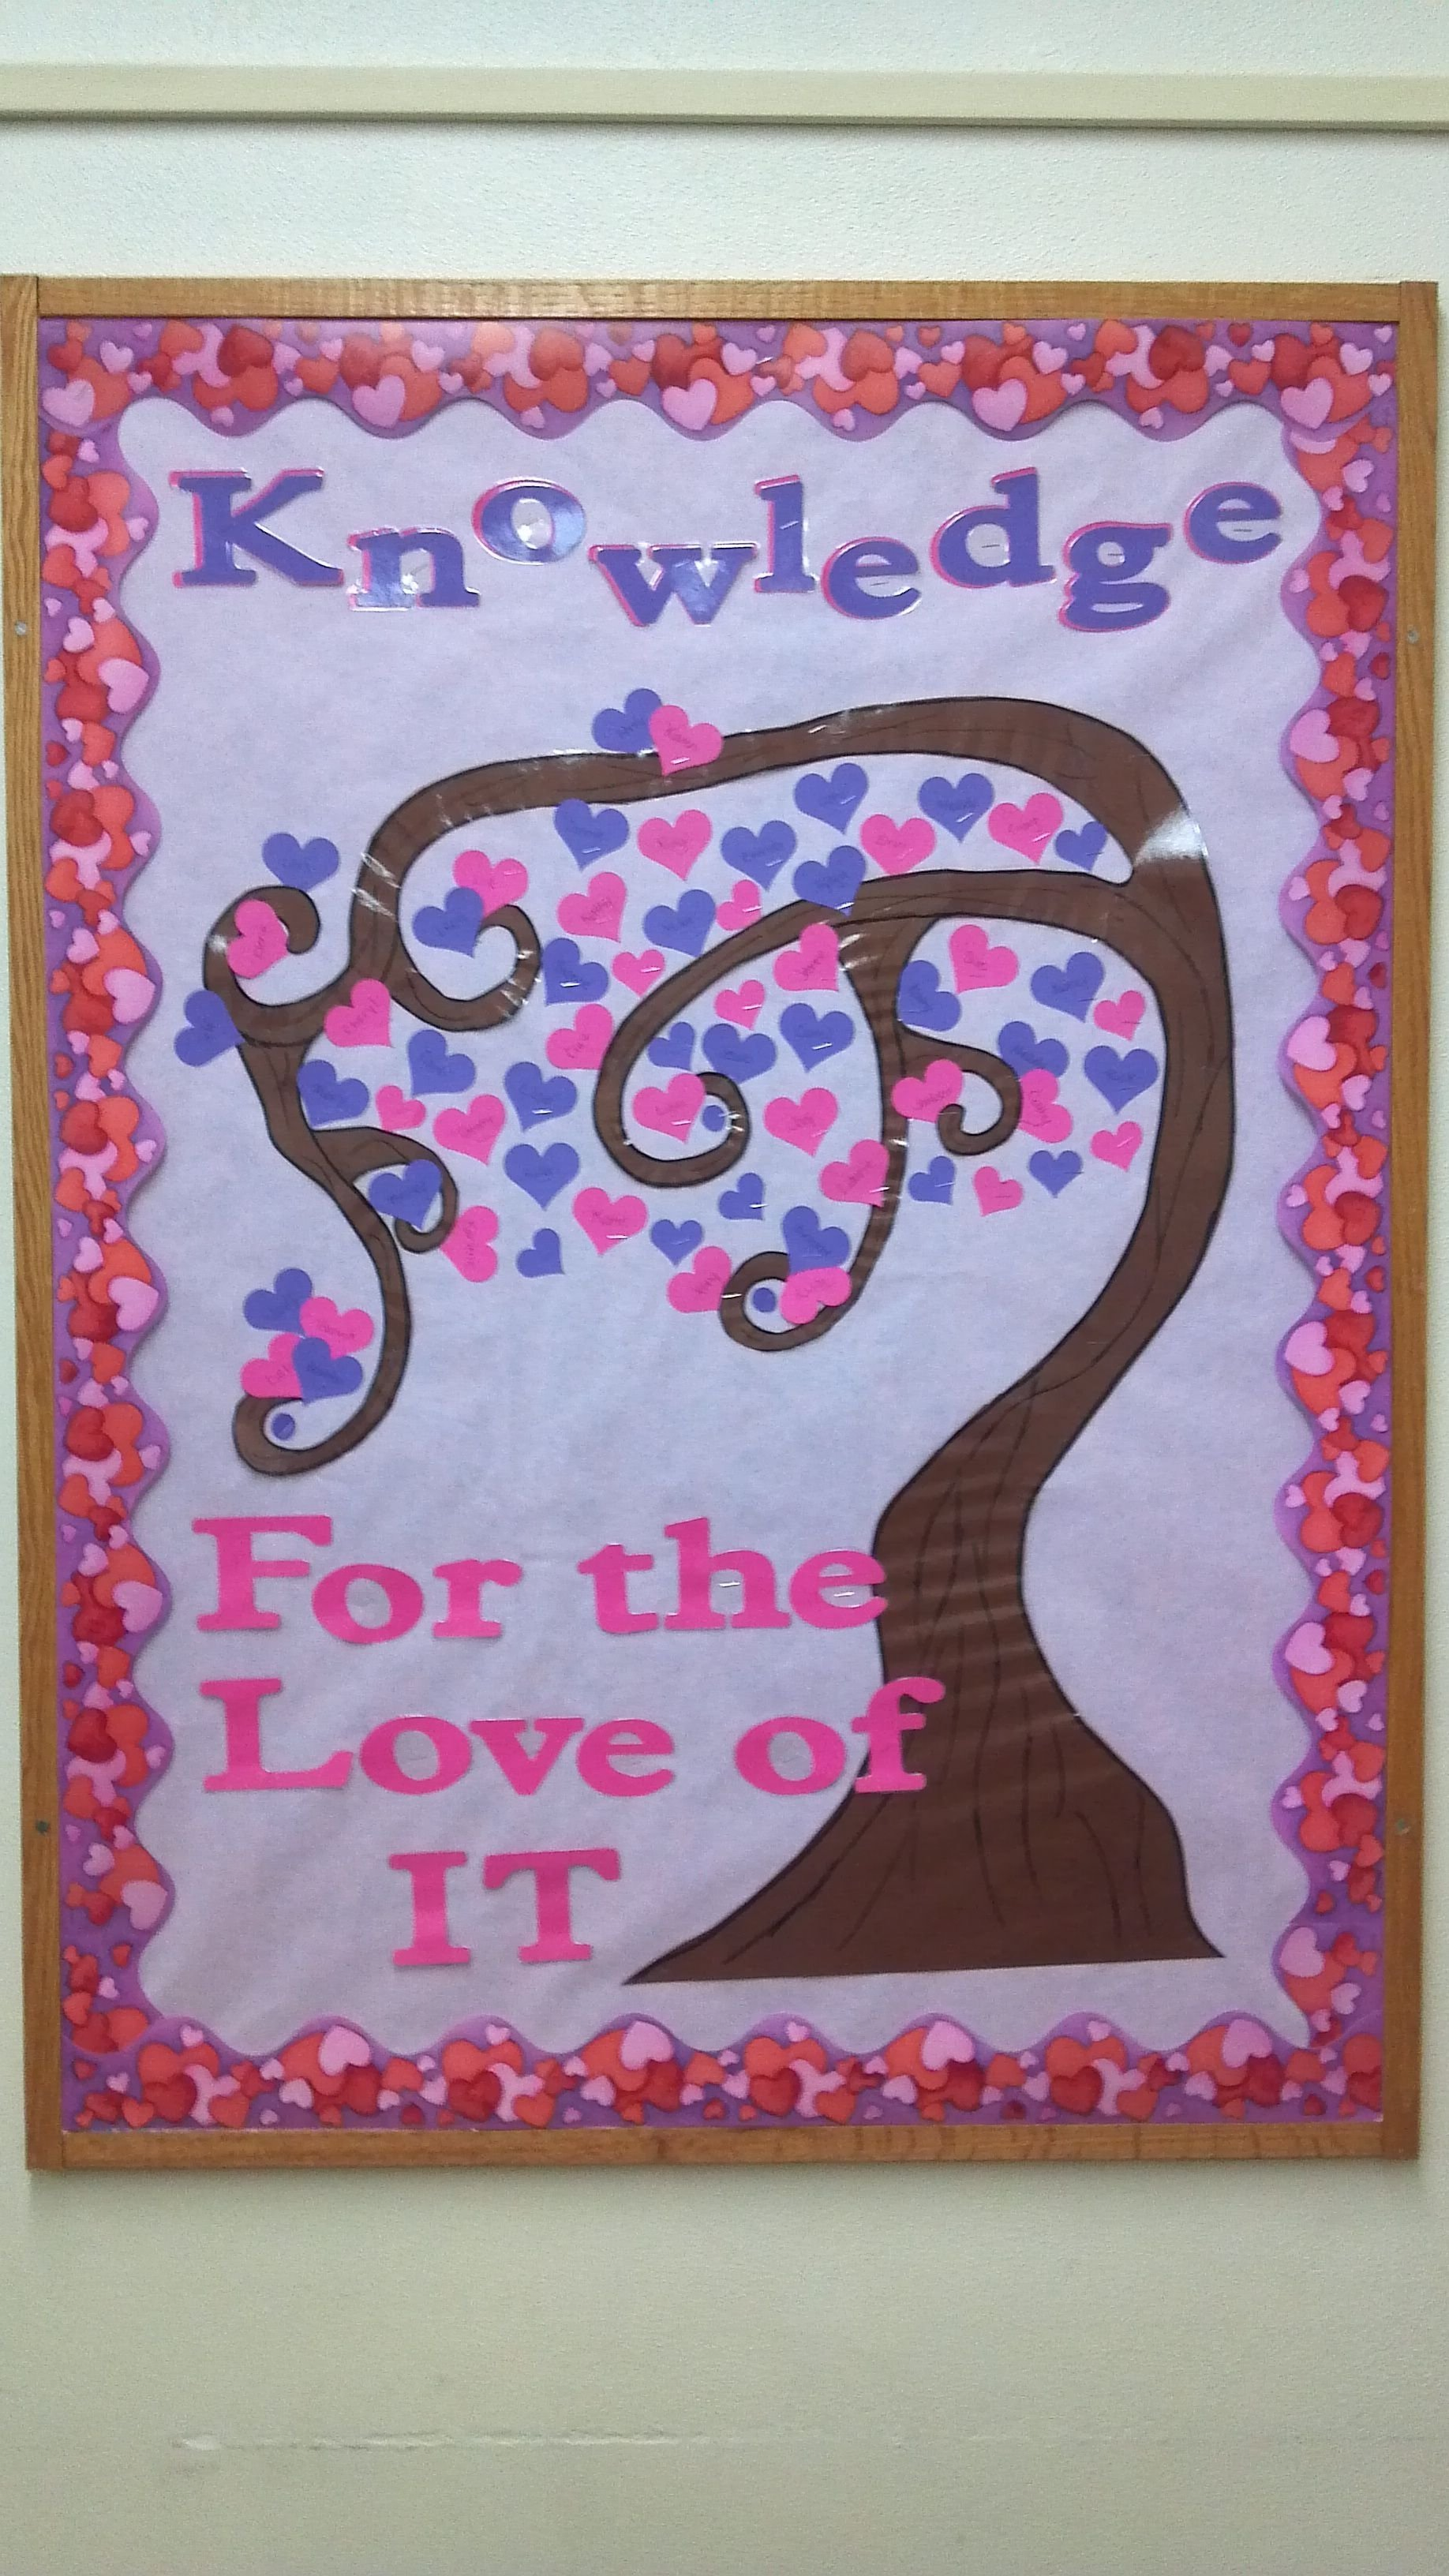 10 Cute February Bulletin Board Ideas For Preschool valentines bulletin board idea playing of tree of knowledge i